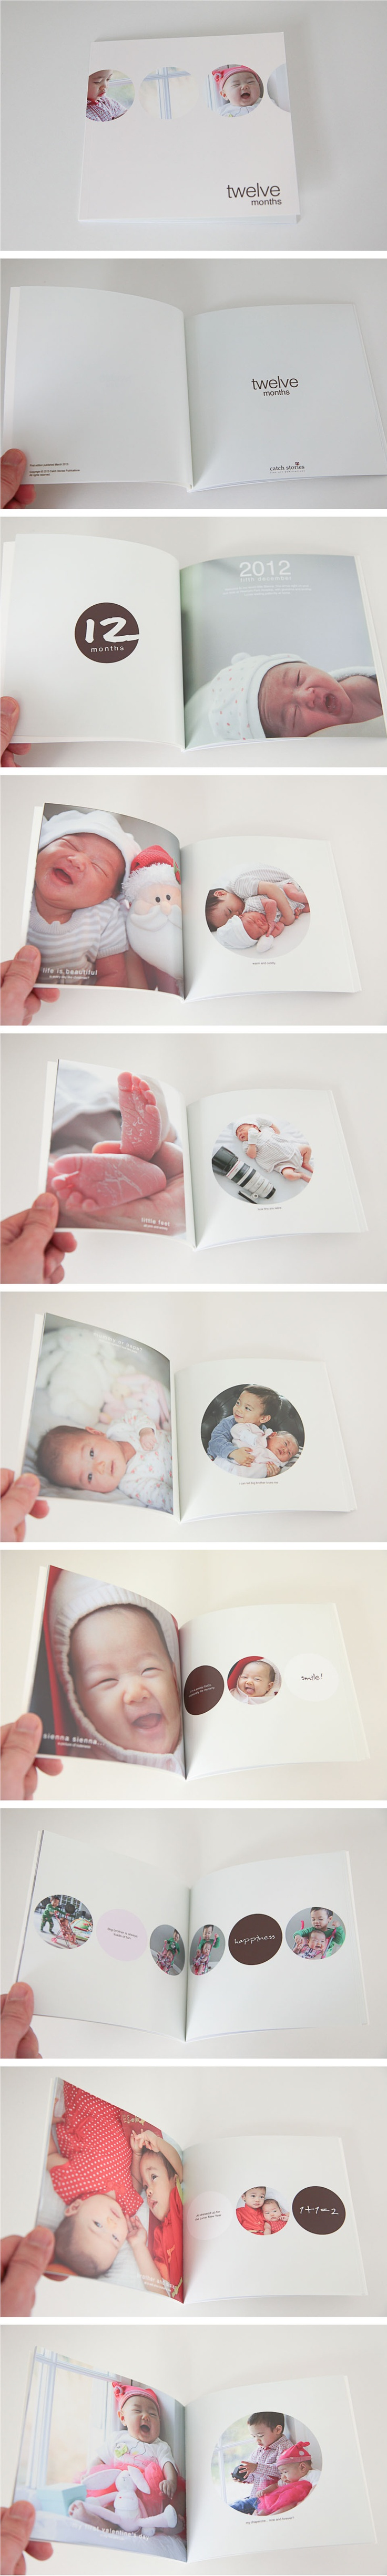 A clean and fun photobook design...